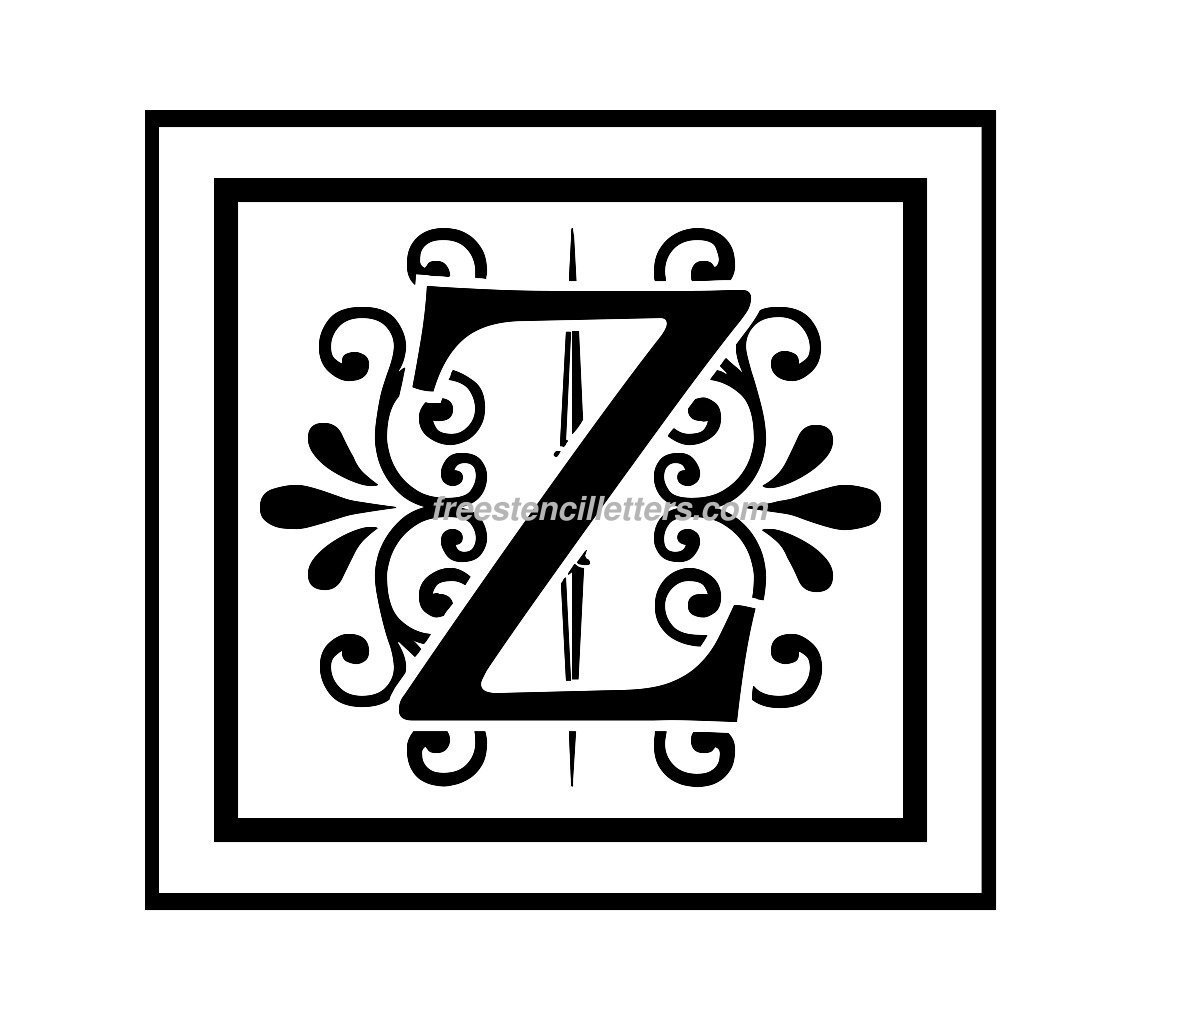 Alphabet s letters to print and cut out free - Print Z Letter Stencil